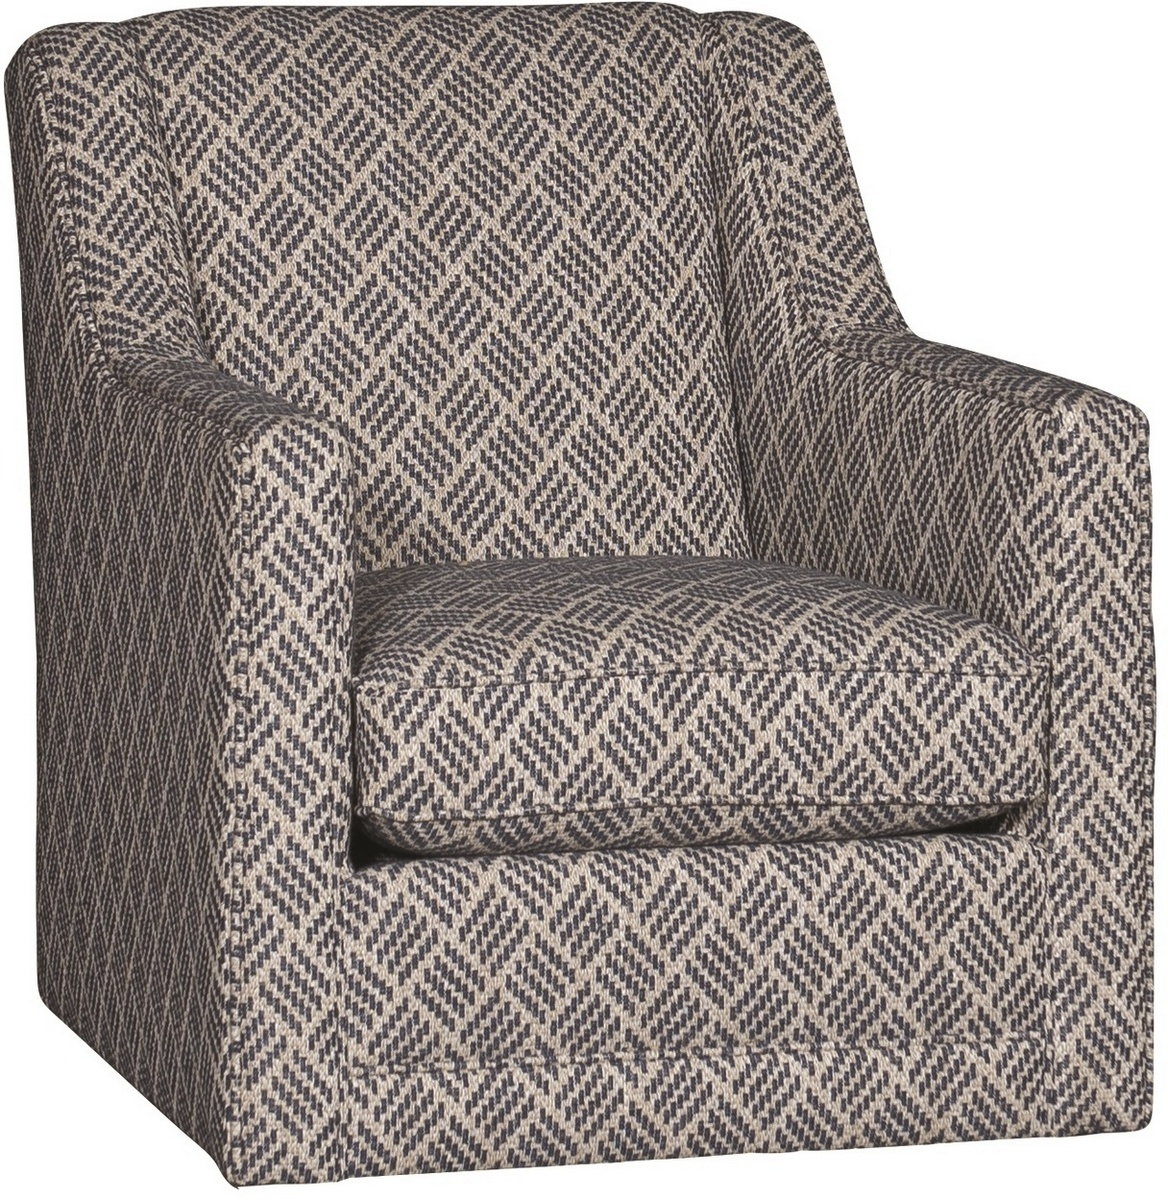 Chelsea Home Garson Swivel Glider Chair Parquet Indigo